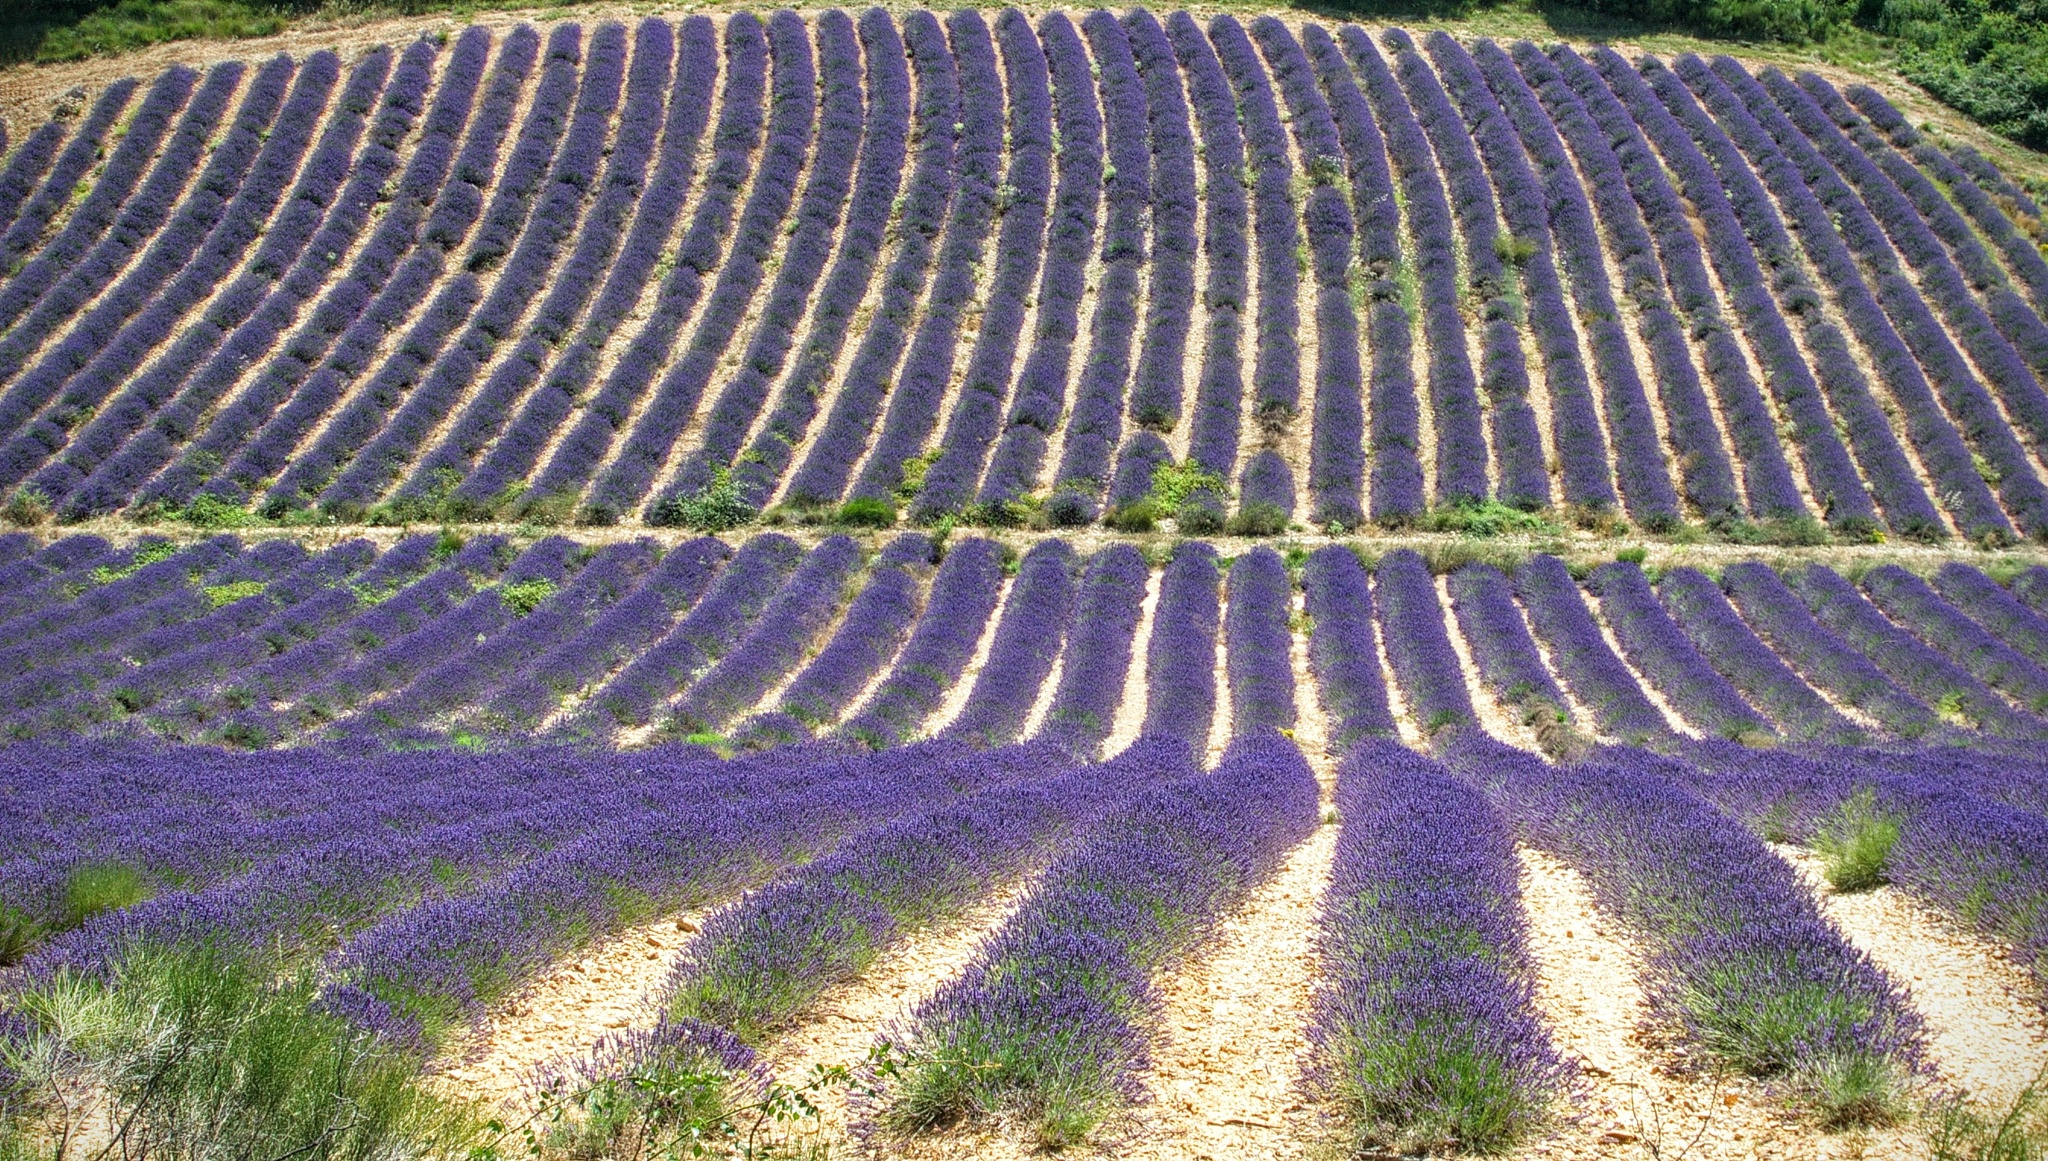 You can't get enough from the view and smell of lavendel fields by Ton Bos